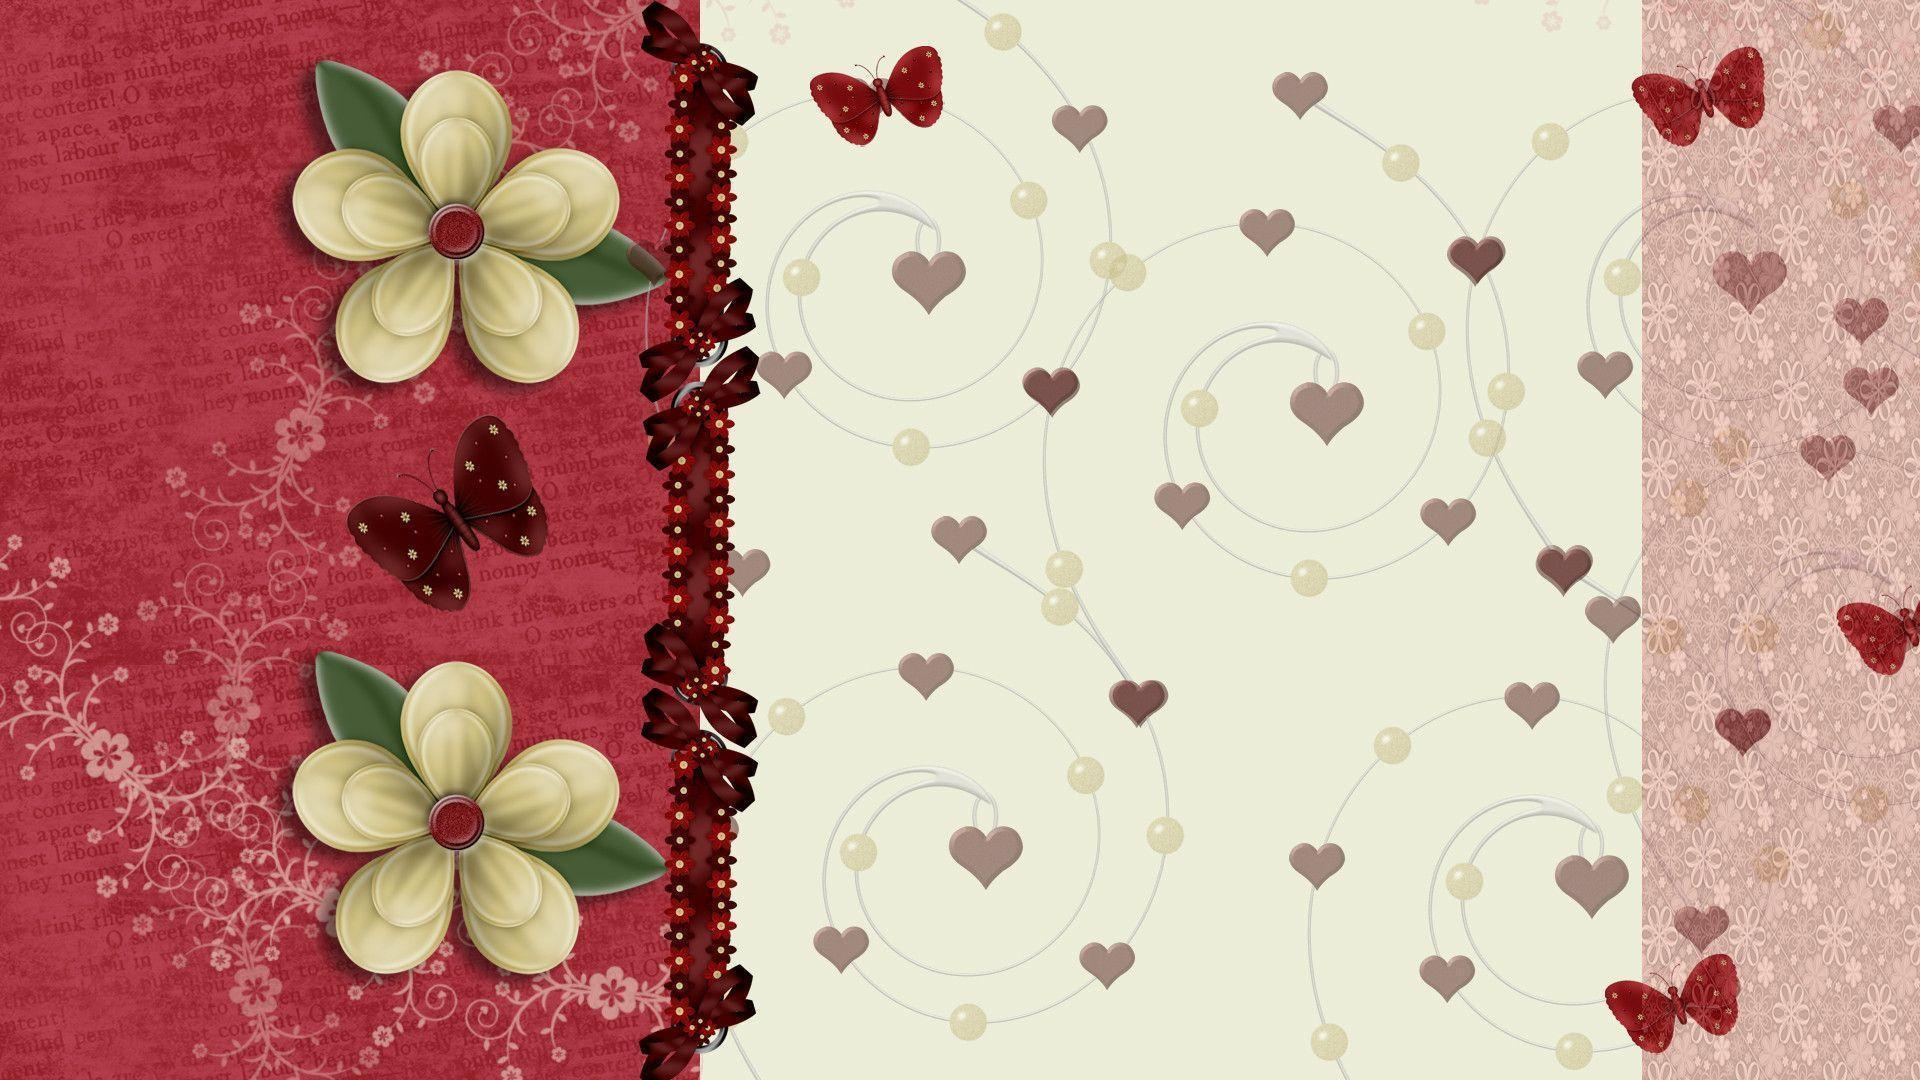 Birthday happy flowers wallpapers flower wallpaper 1920x1080 px ...